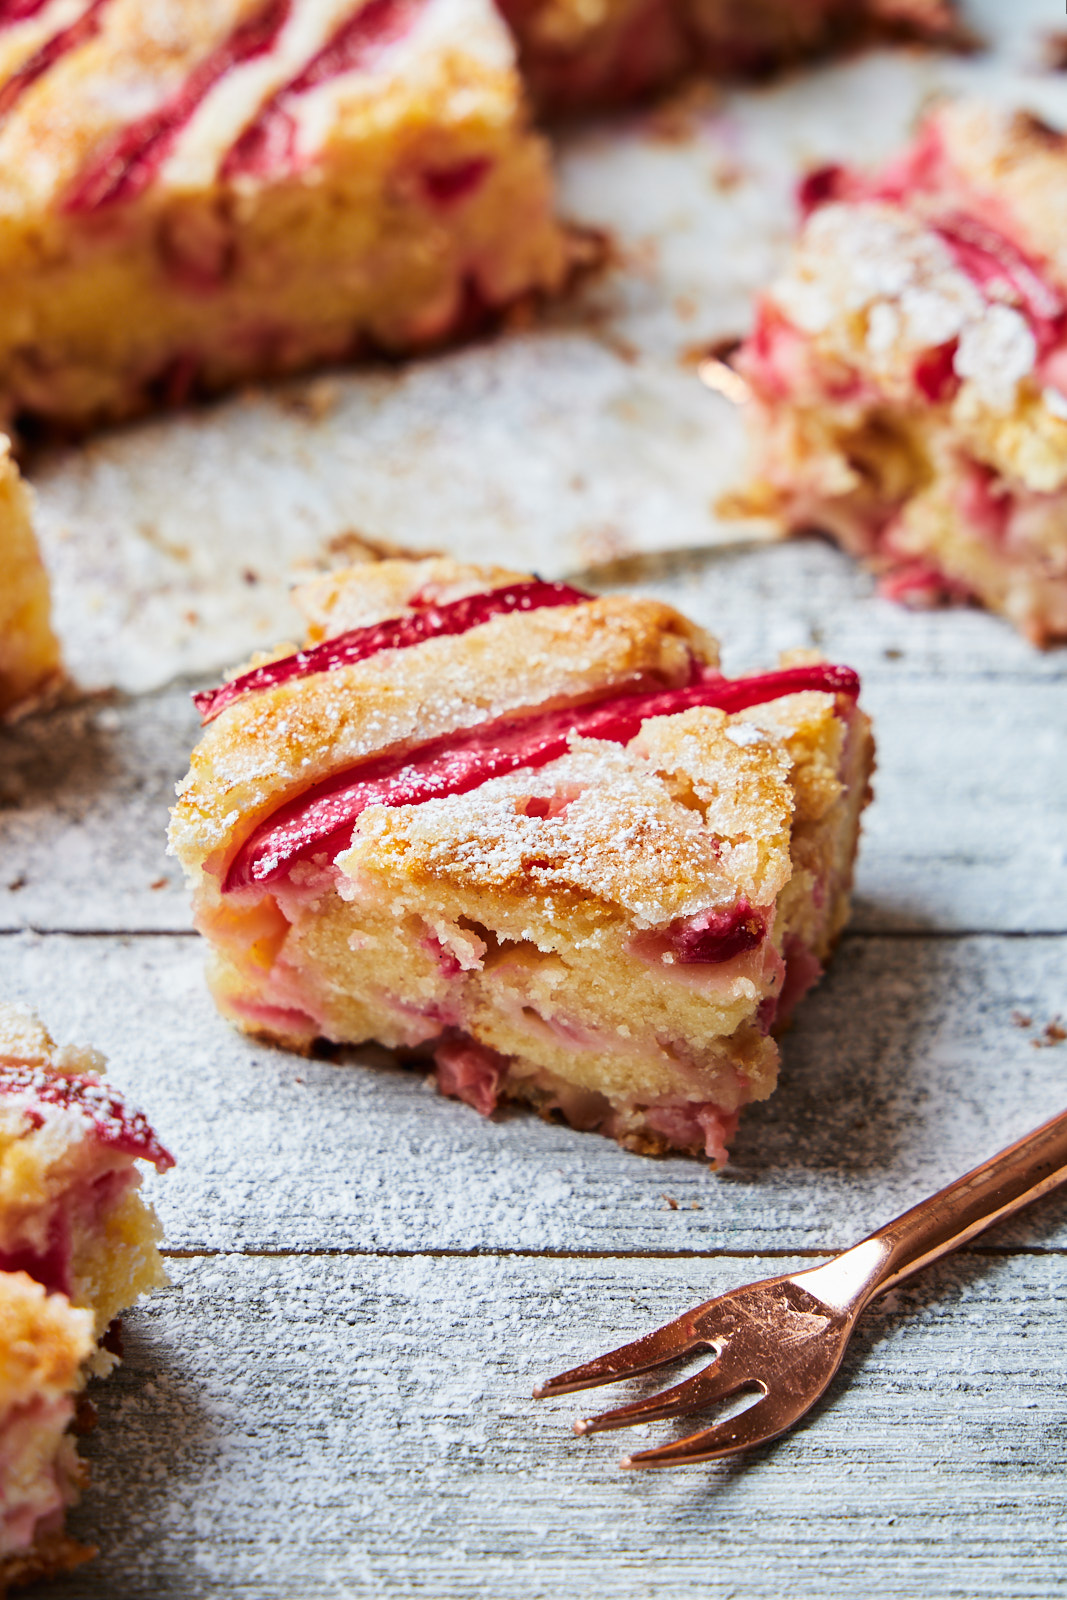 A single slice of Almond Rhubarb Cake